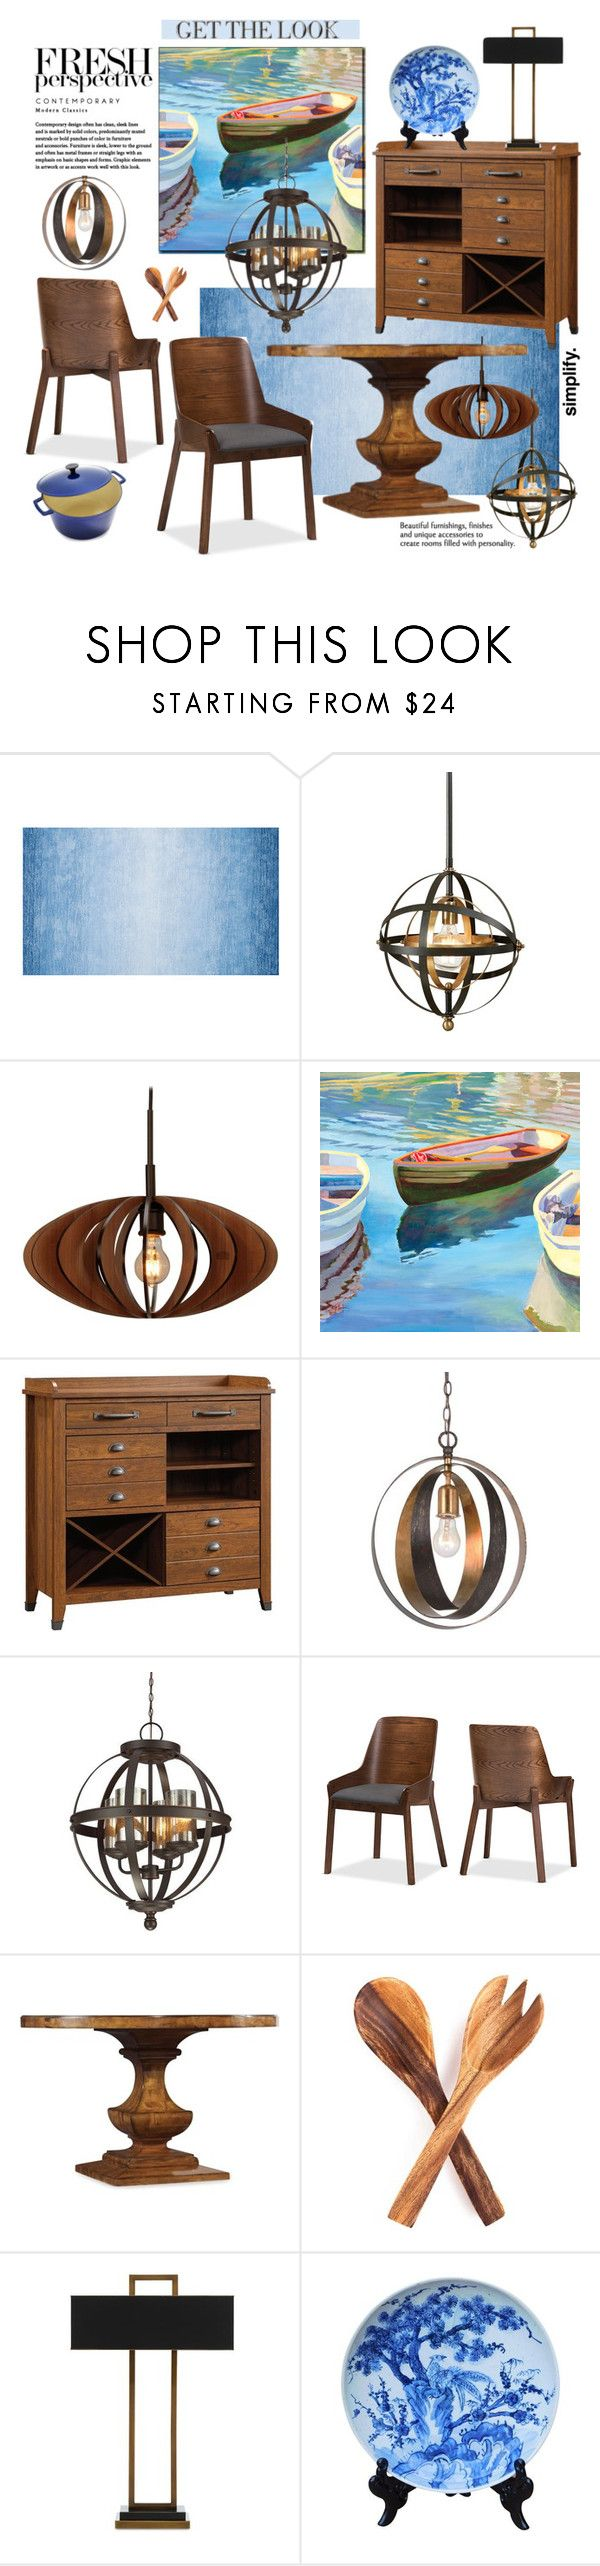 """""""Trending Lighting for 2018"""" by esch103 ❤ liked on Polyvore featuring interior, interiors, interior design, home, home decor, interior decorating, Uttermost, Woodbridge Lighting, Crystorama and Sea Gull Lighting"""